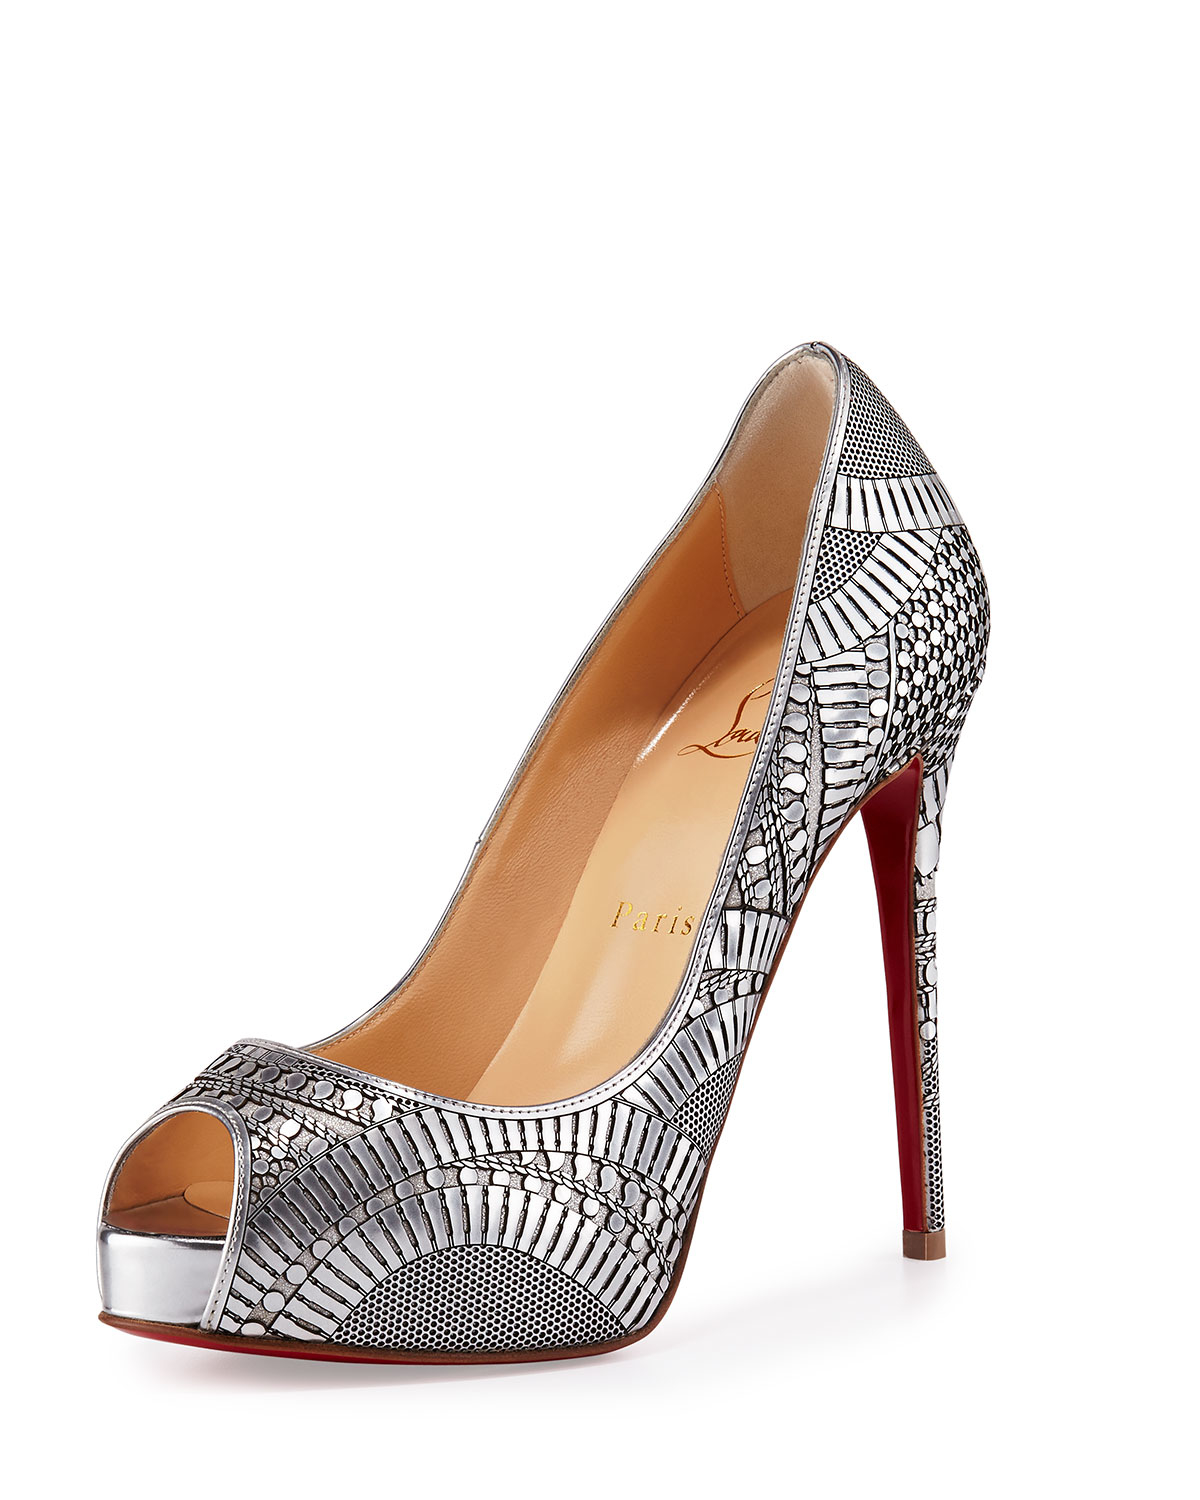 christian louboutin milla metallic strappy red sole bootie